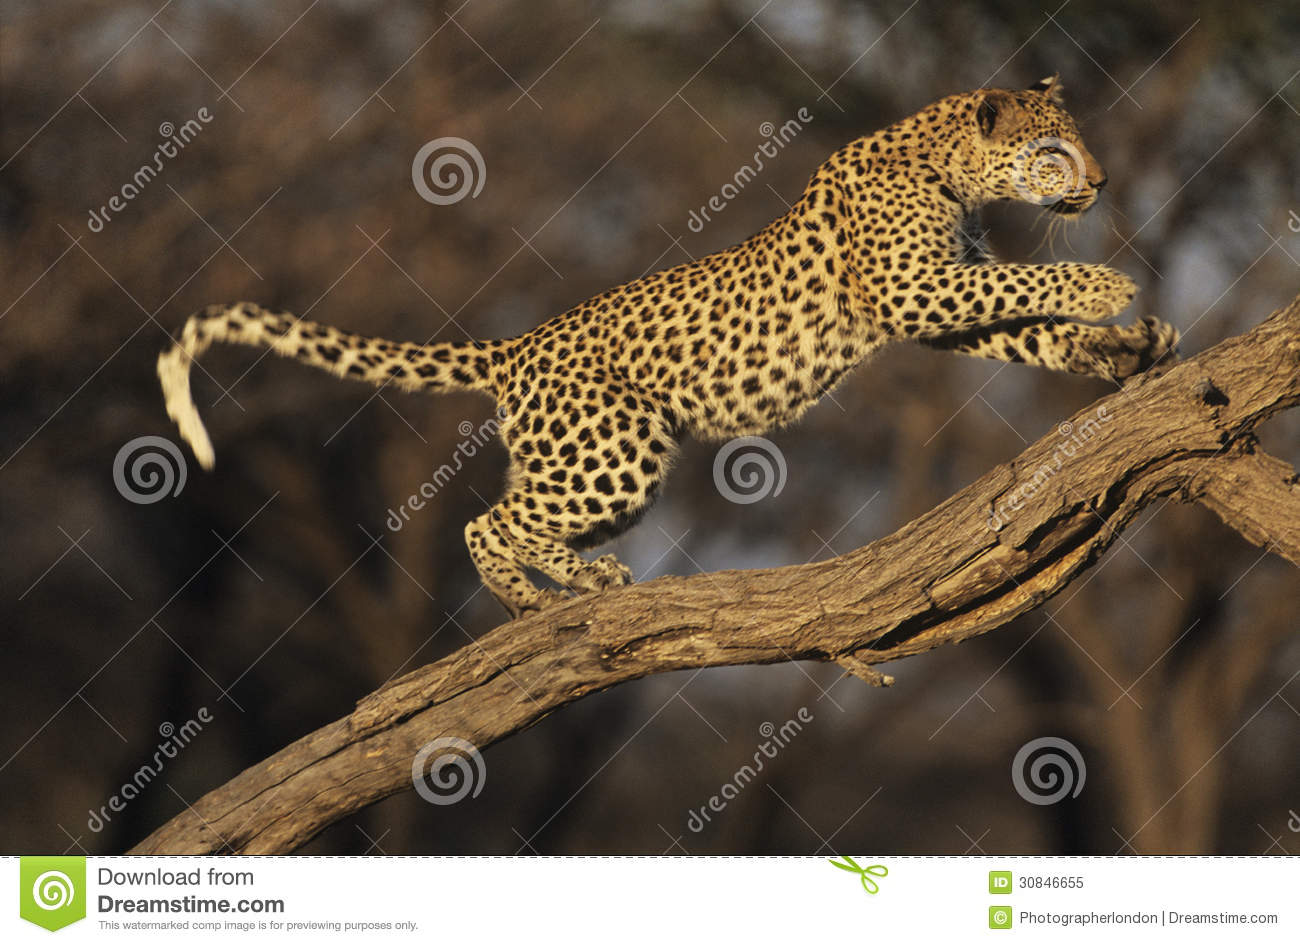 Leopard (Panthera Pardus) standing on branch